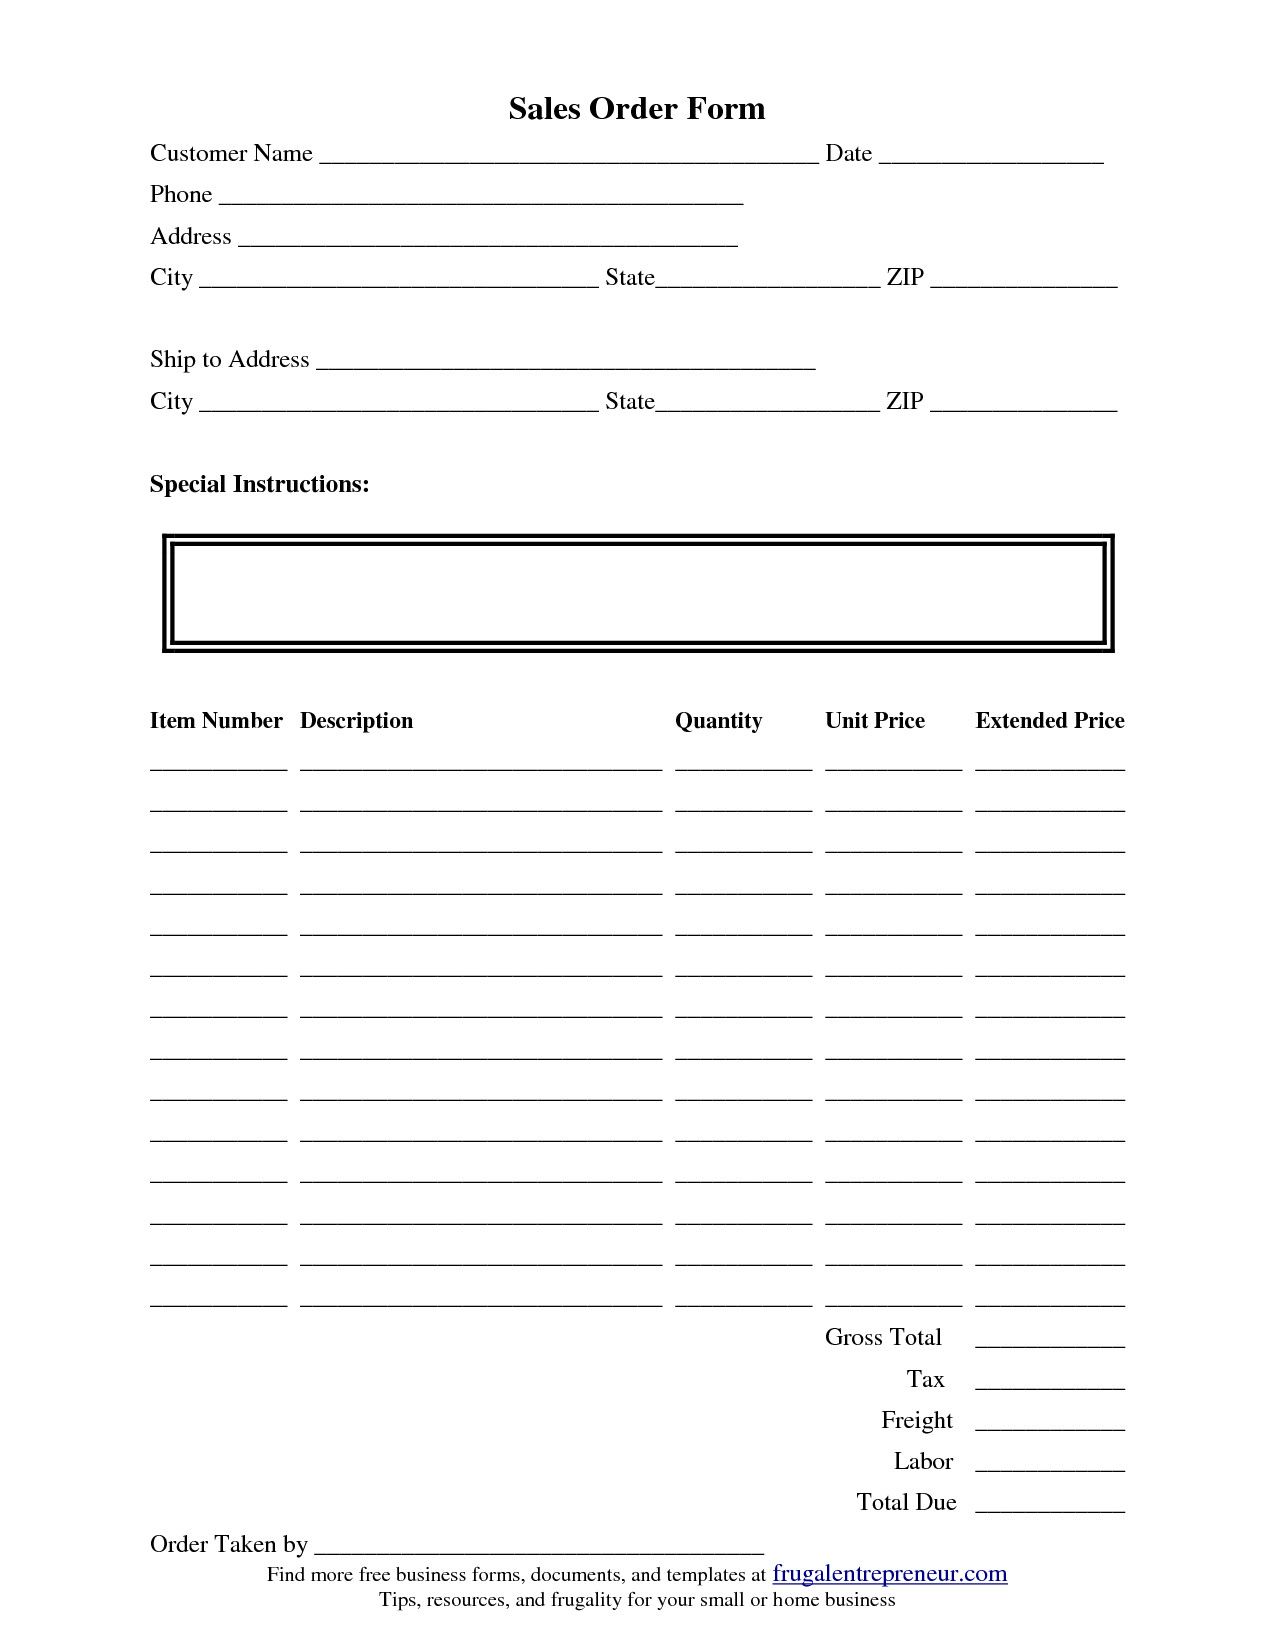 Sales order forms Templates order form Template